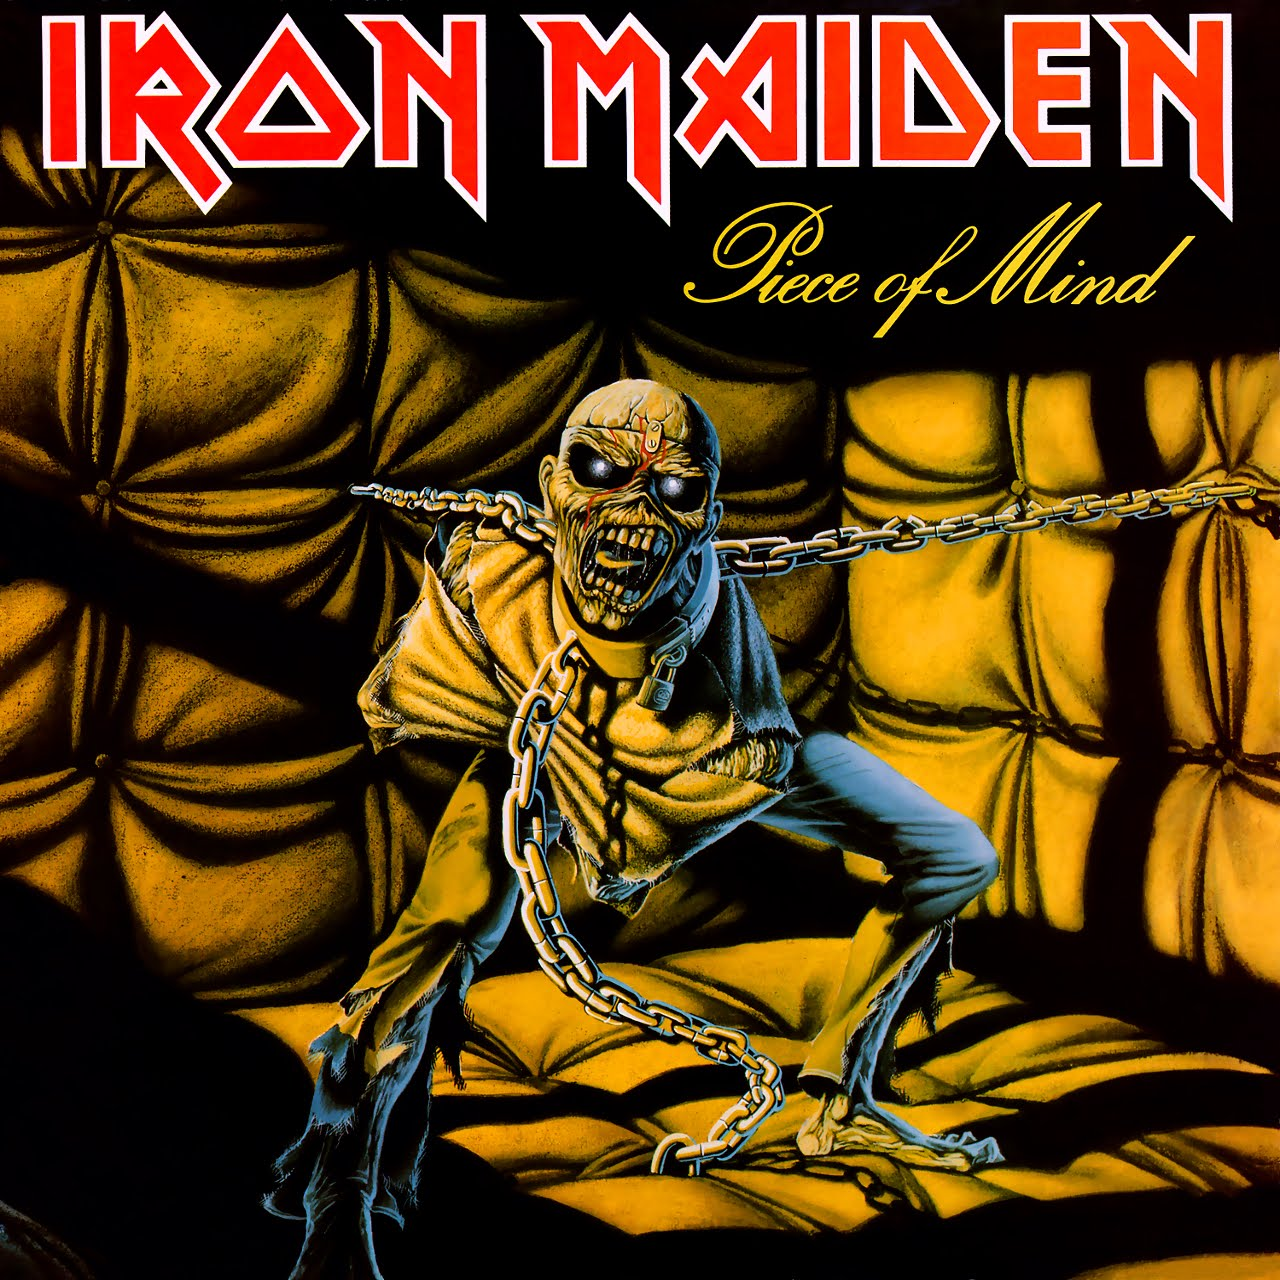 I Can Play With Madness Iron Maiden